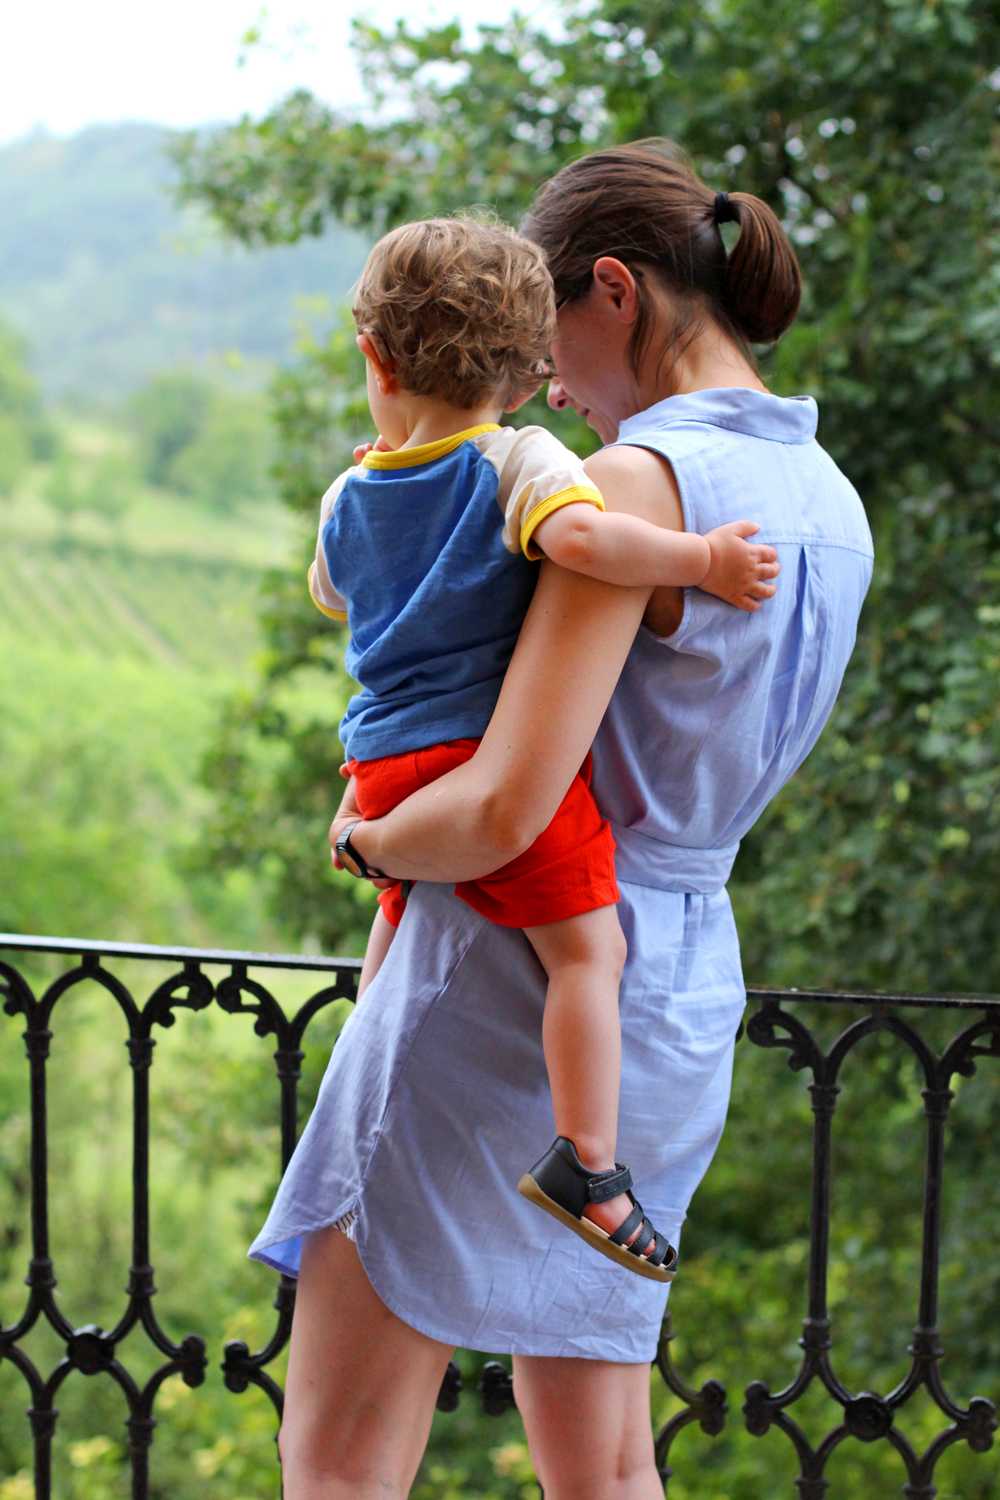 Family villa holiday in Piemonte, Italy - travel & style blog